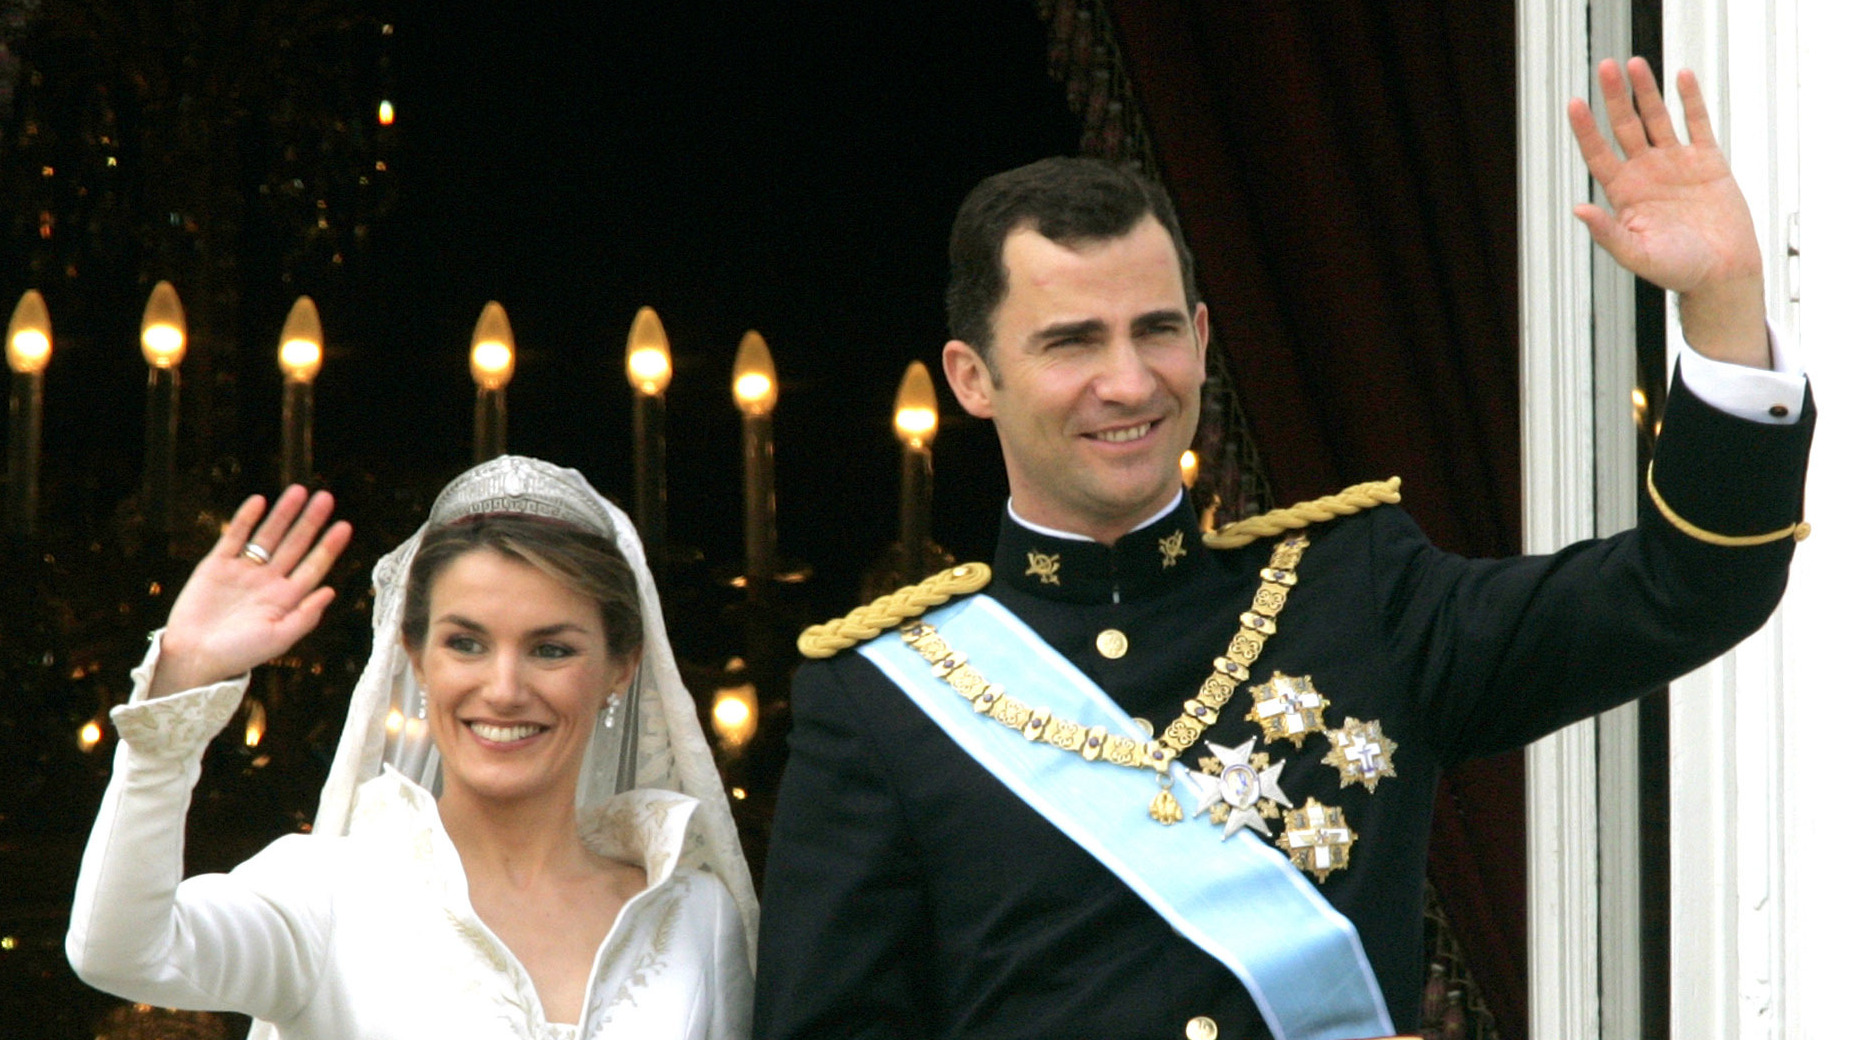 Move Over Kate Middleton For Spains MiddleClass Queen